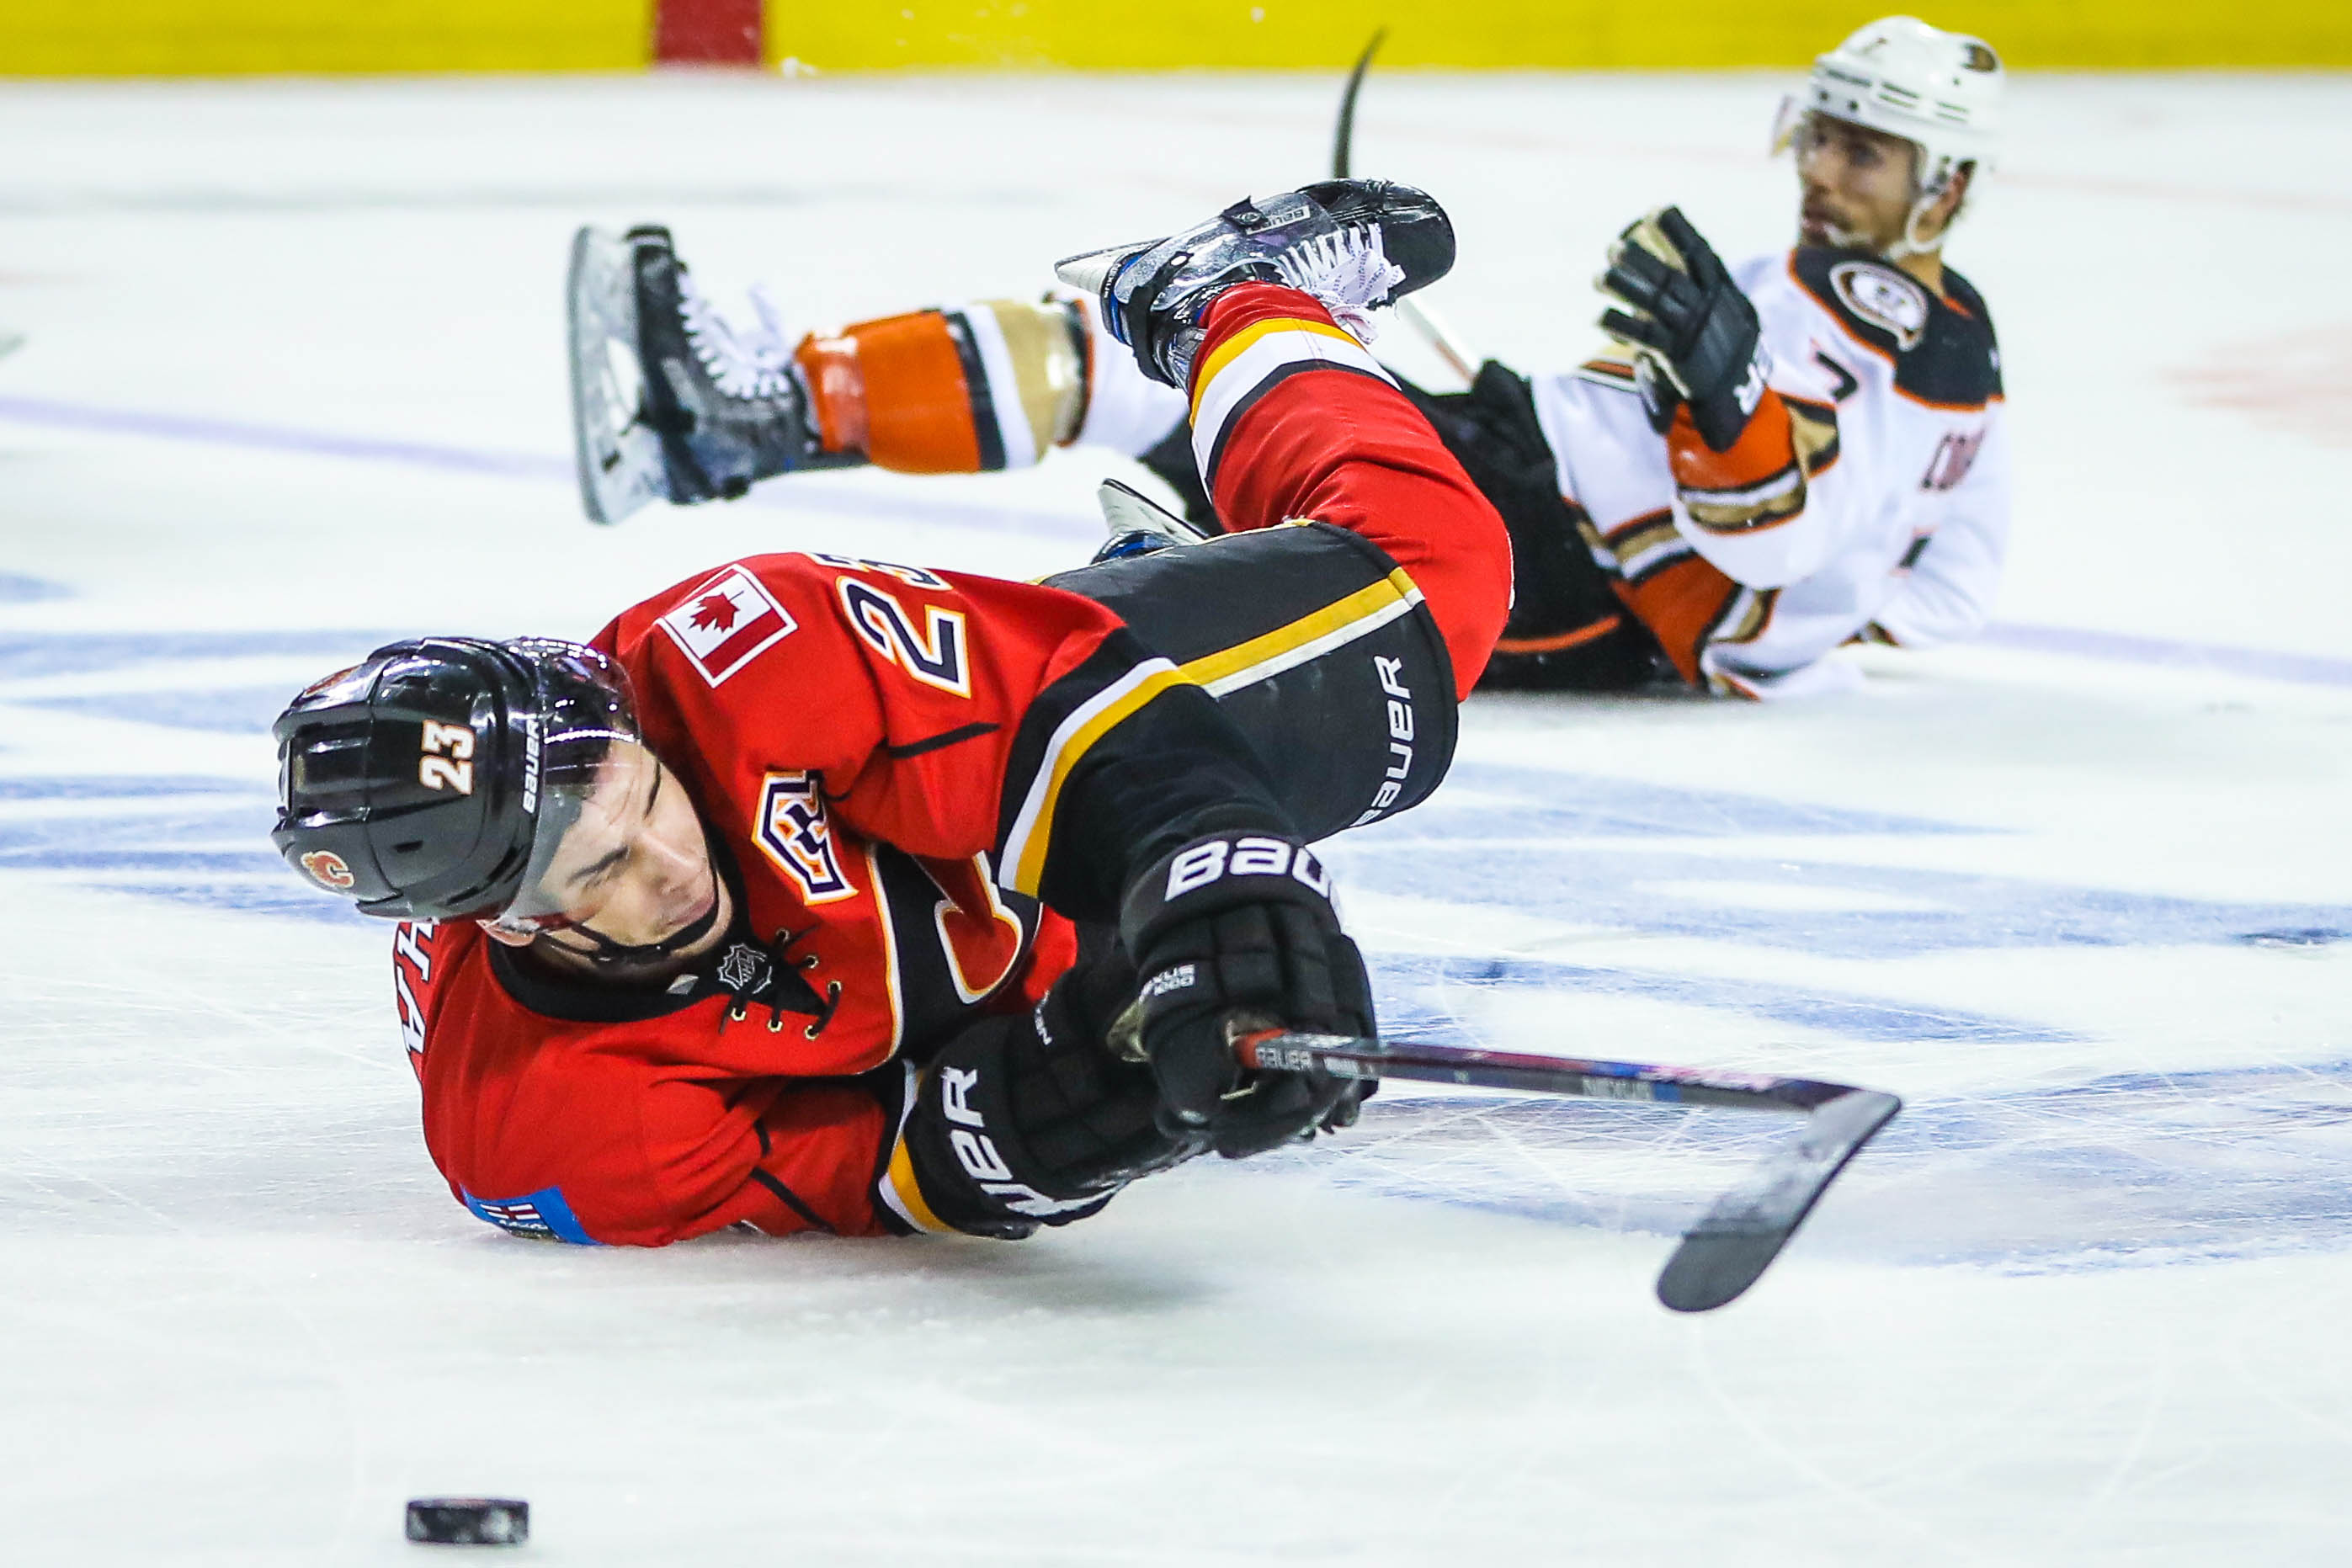 10017961-nhl-stanley-cup-playoffs-anaheim-ducks-at-calgary-flames